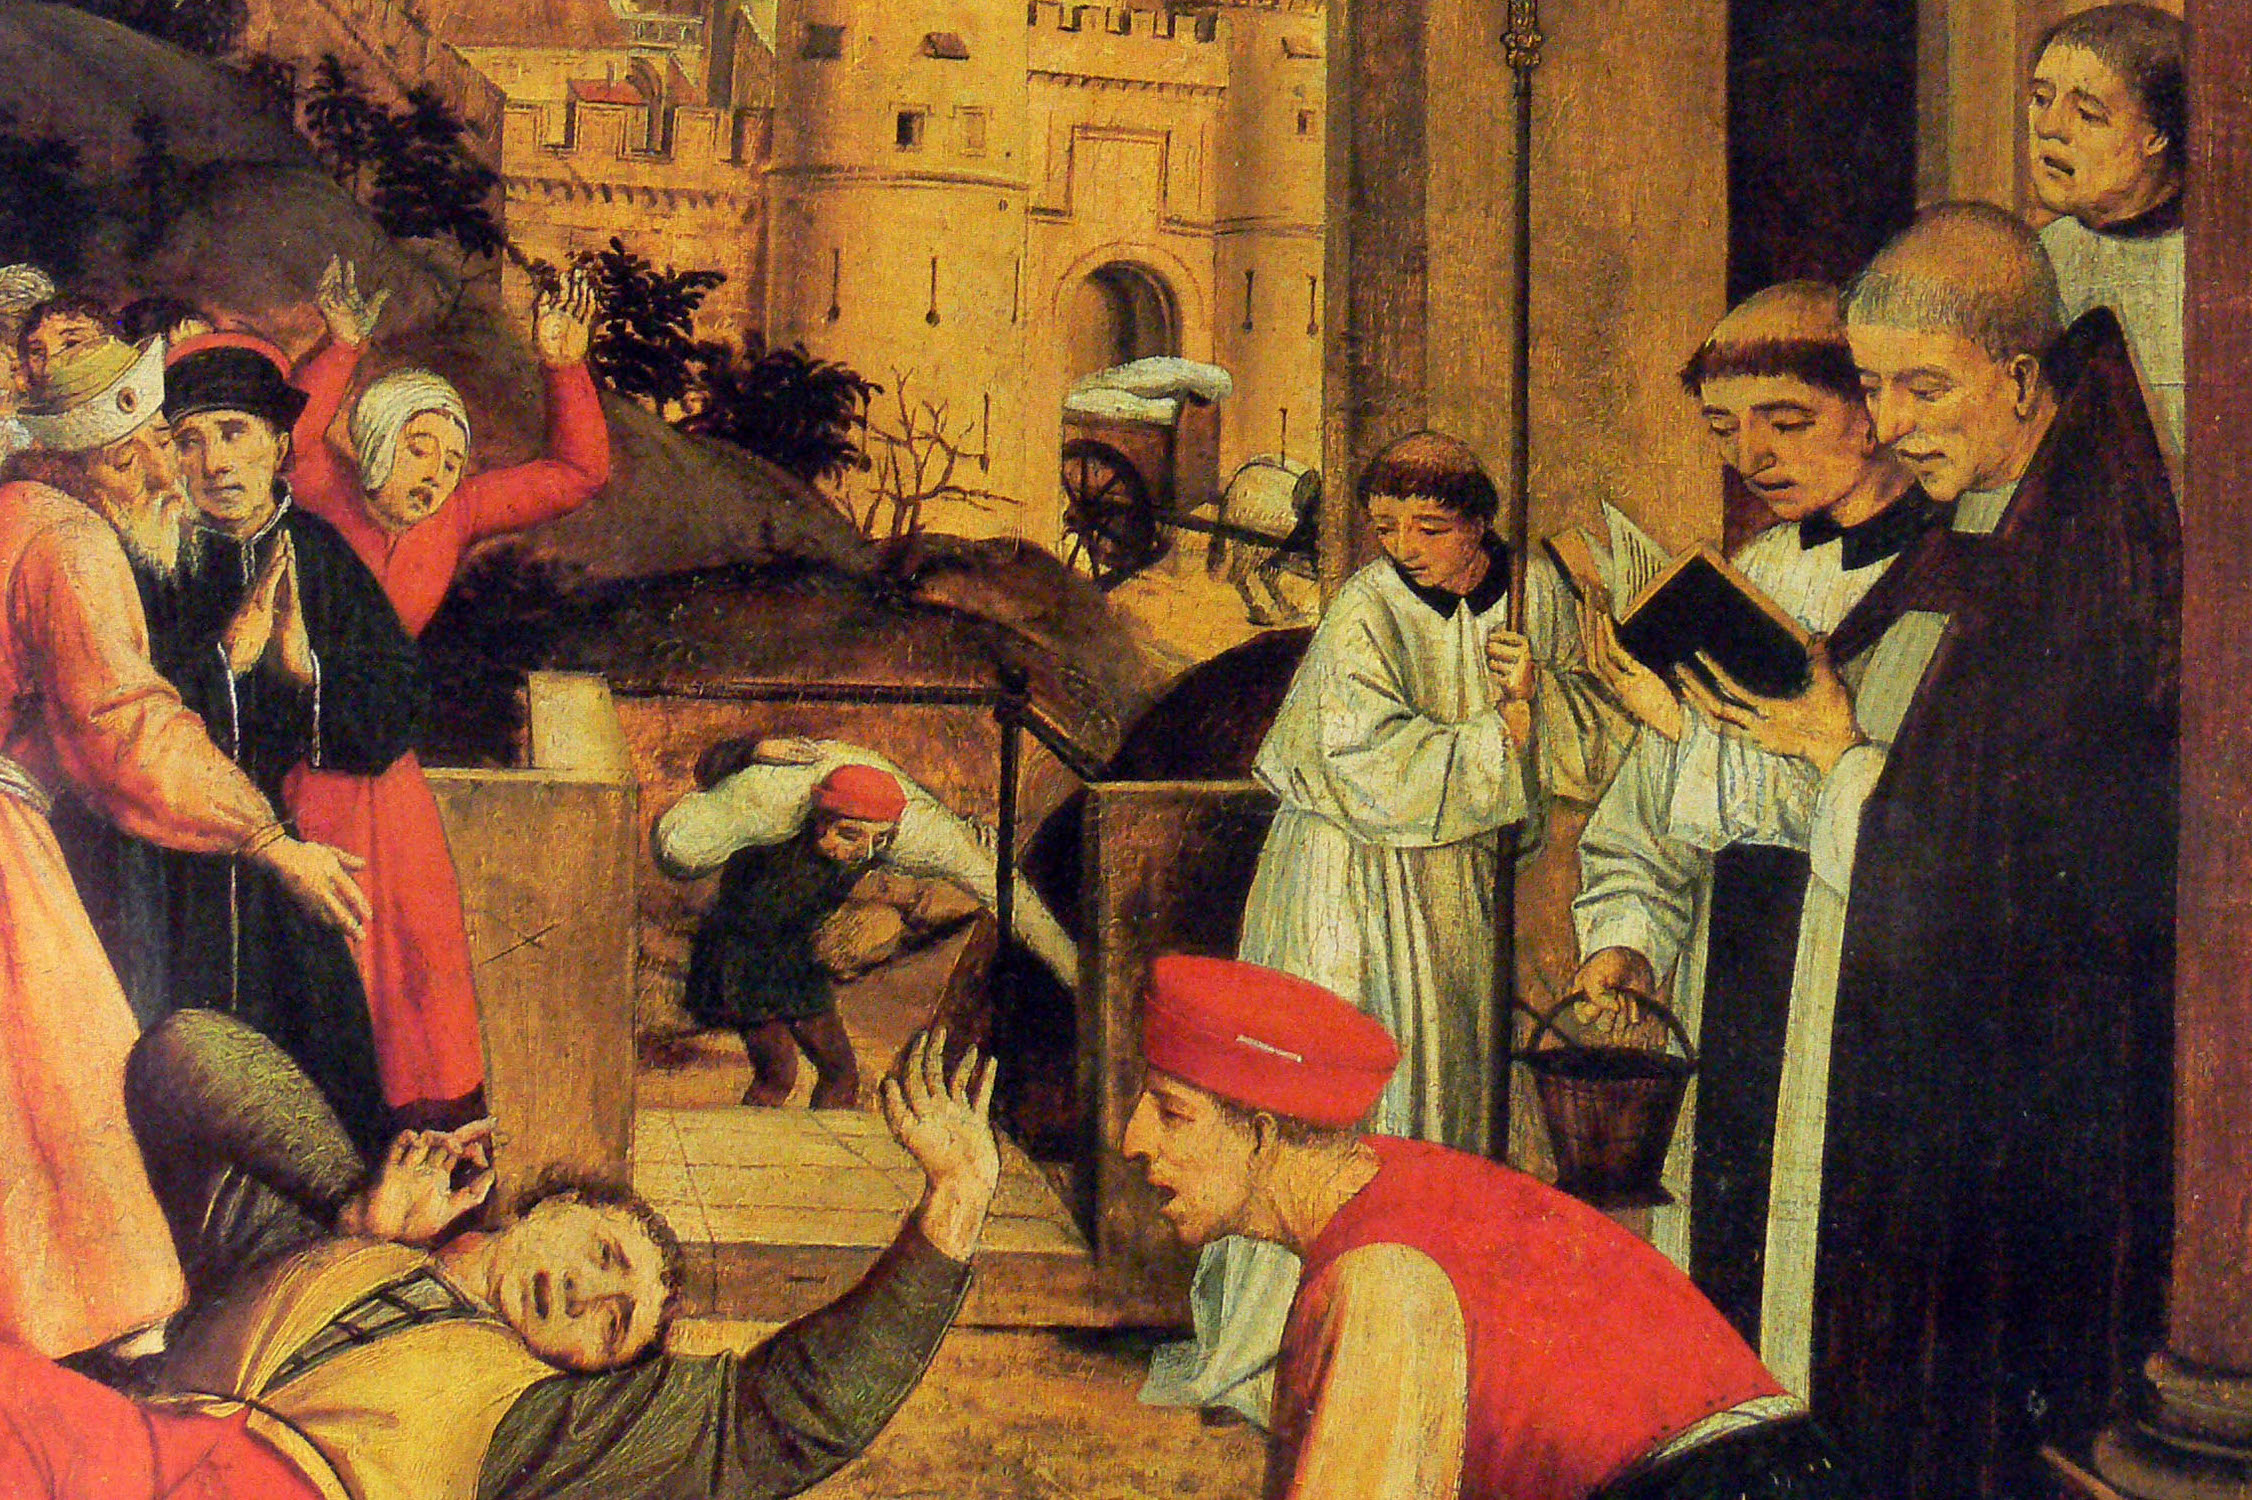 Medieval painting of the Justinian plague.